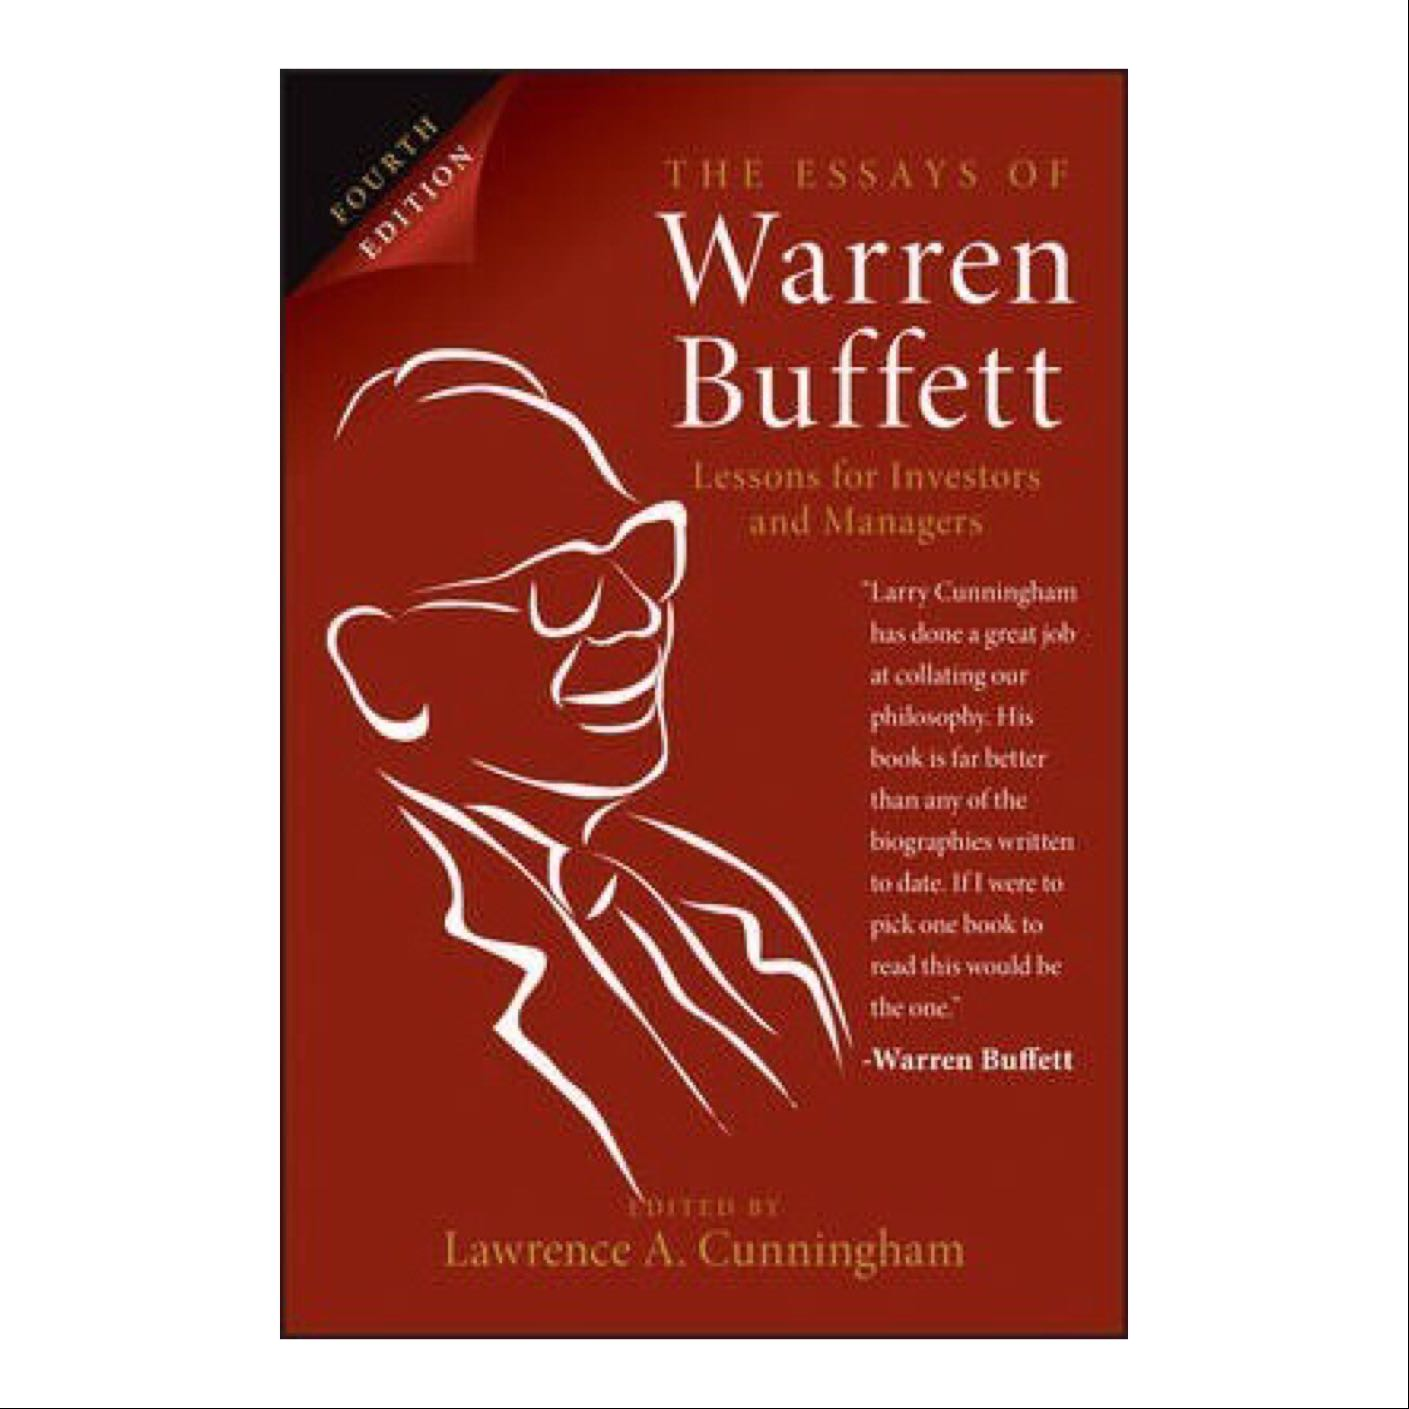 019 Essay Example The Essays Of Warren Lessons For Investors And Managers 1524100501 7d4f23ba Stirring Buffett Pages Audiobook Download Summary Full